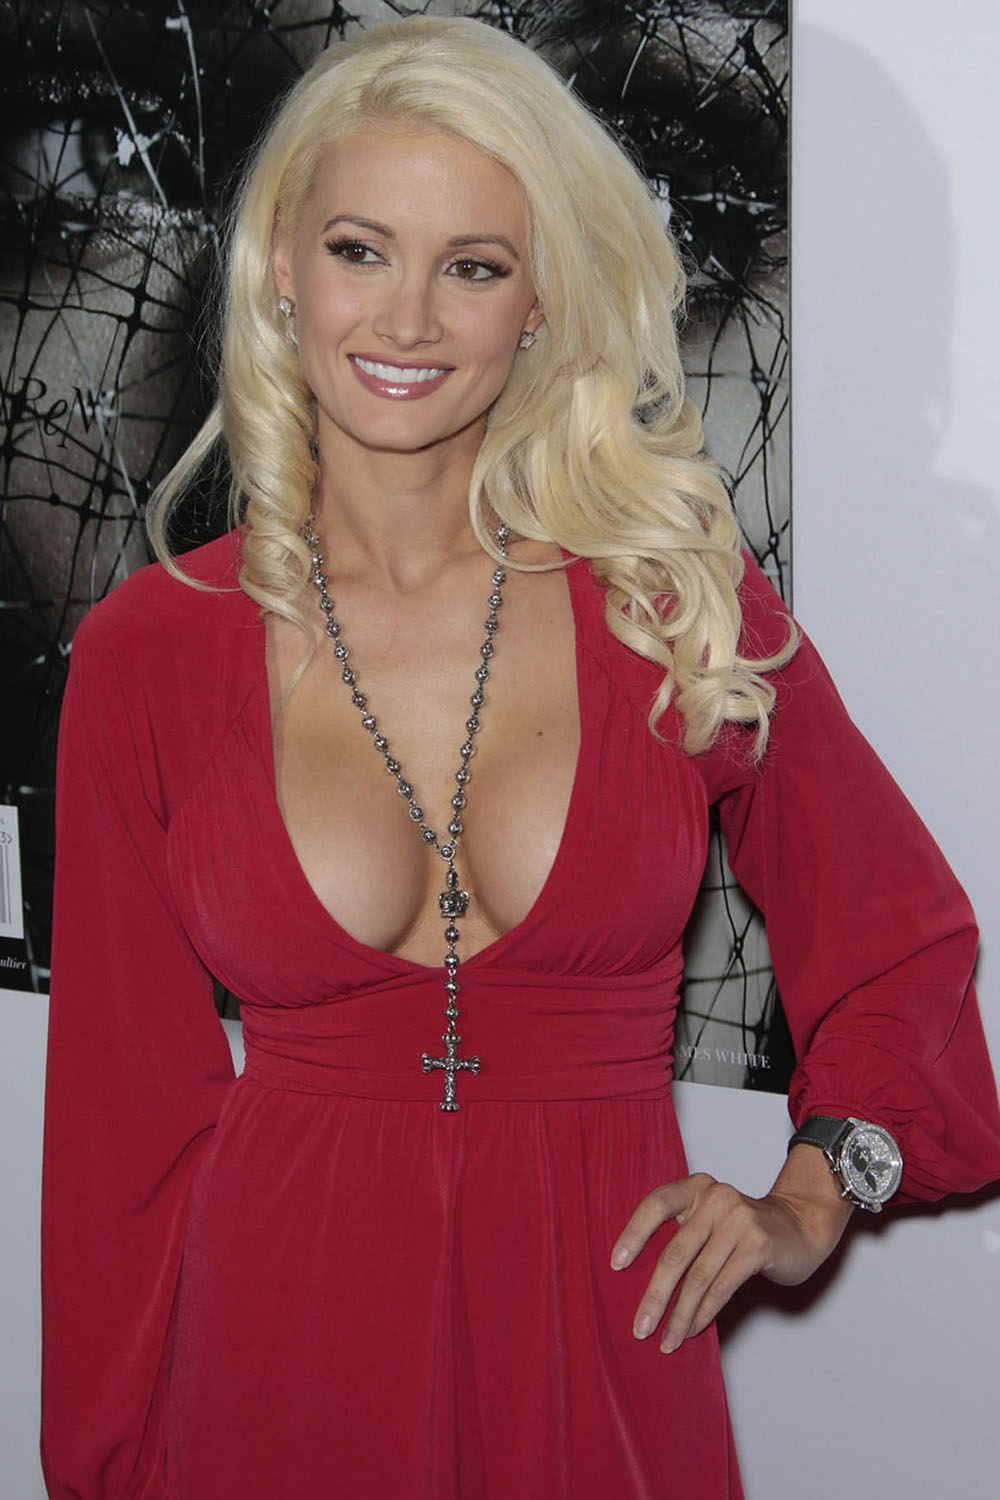 Think, that Holly madison as have thought